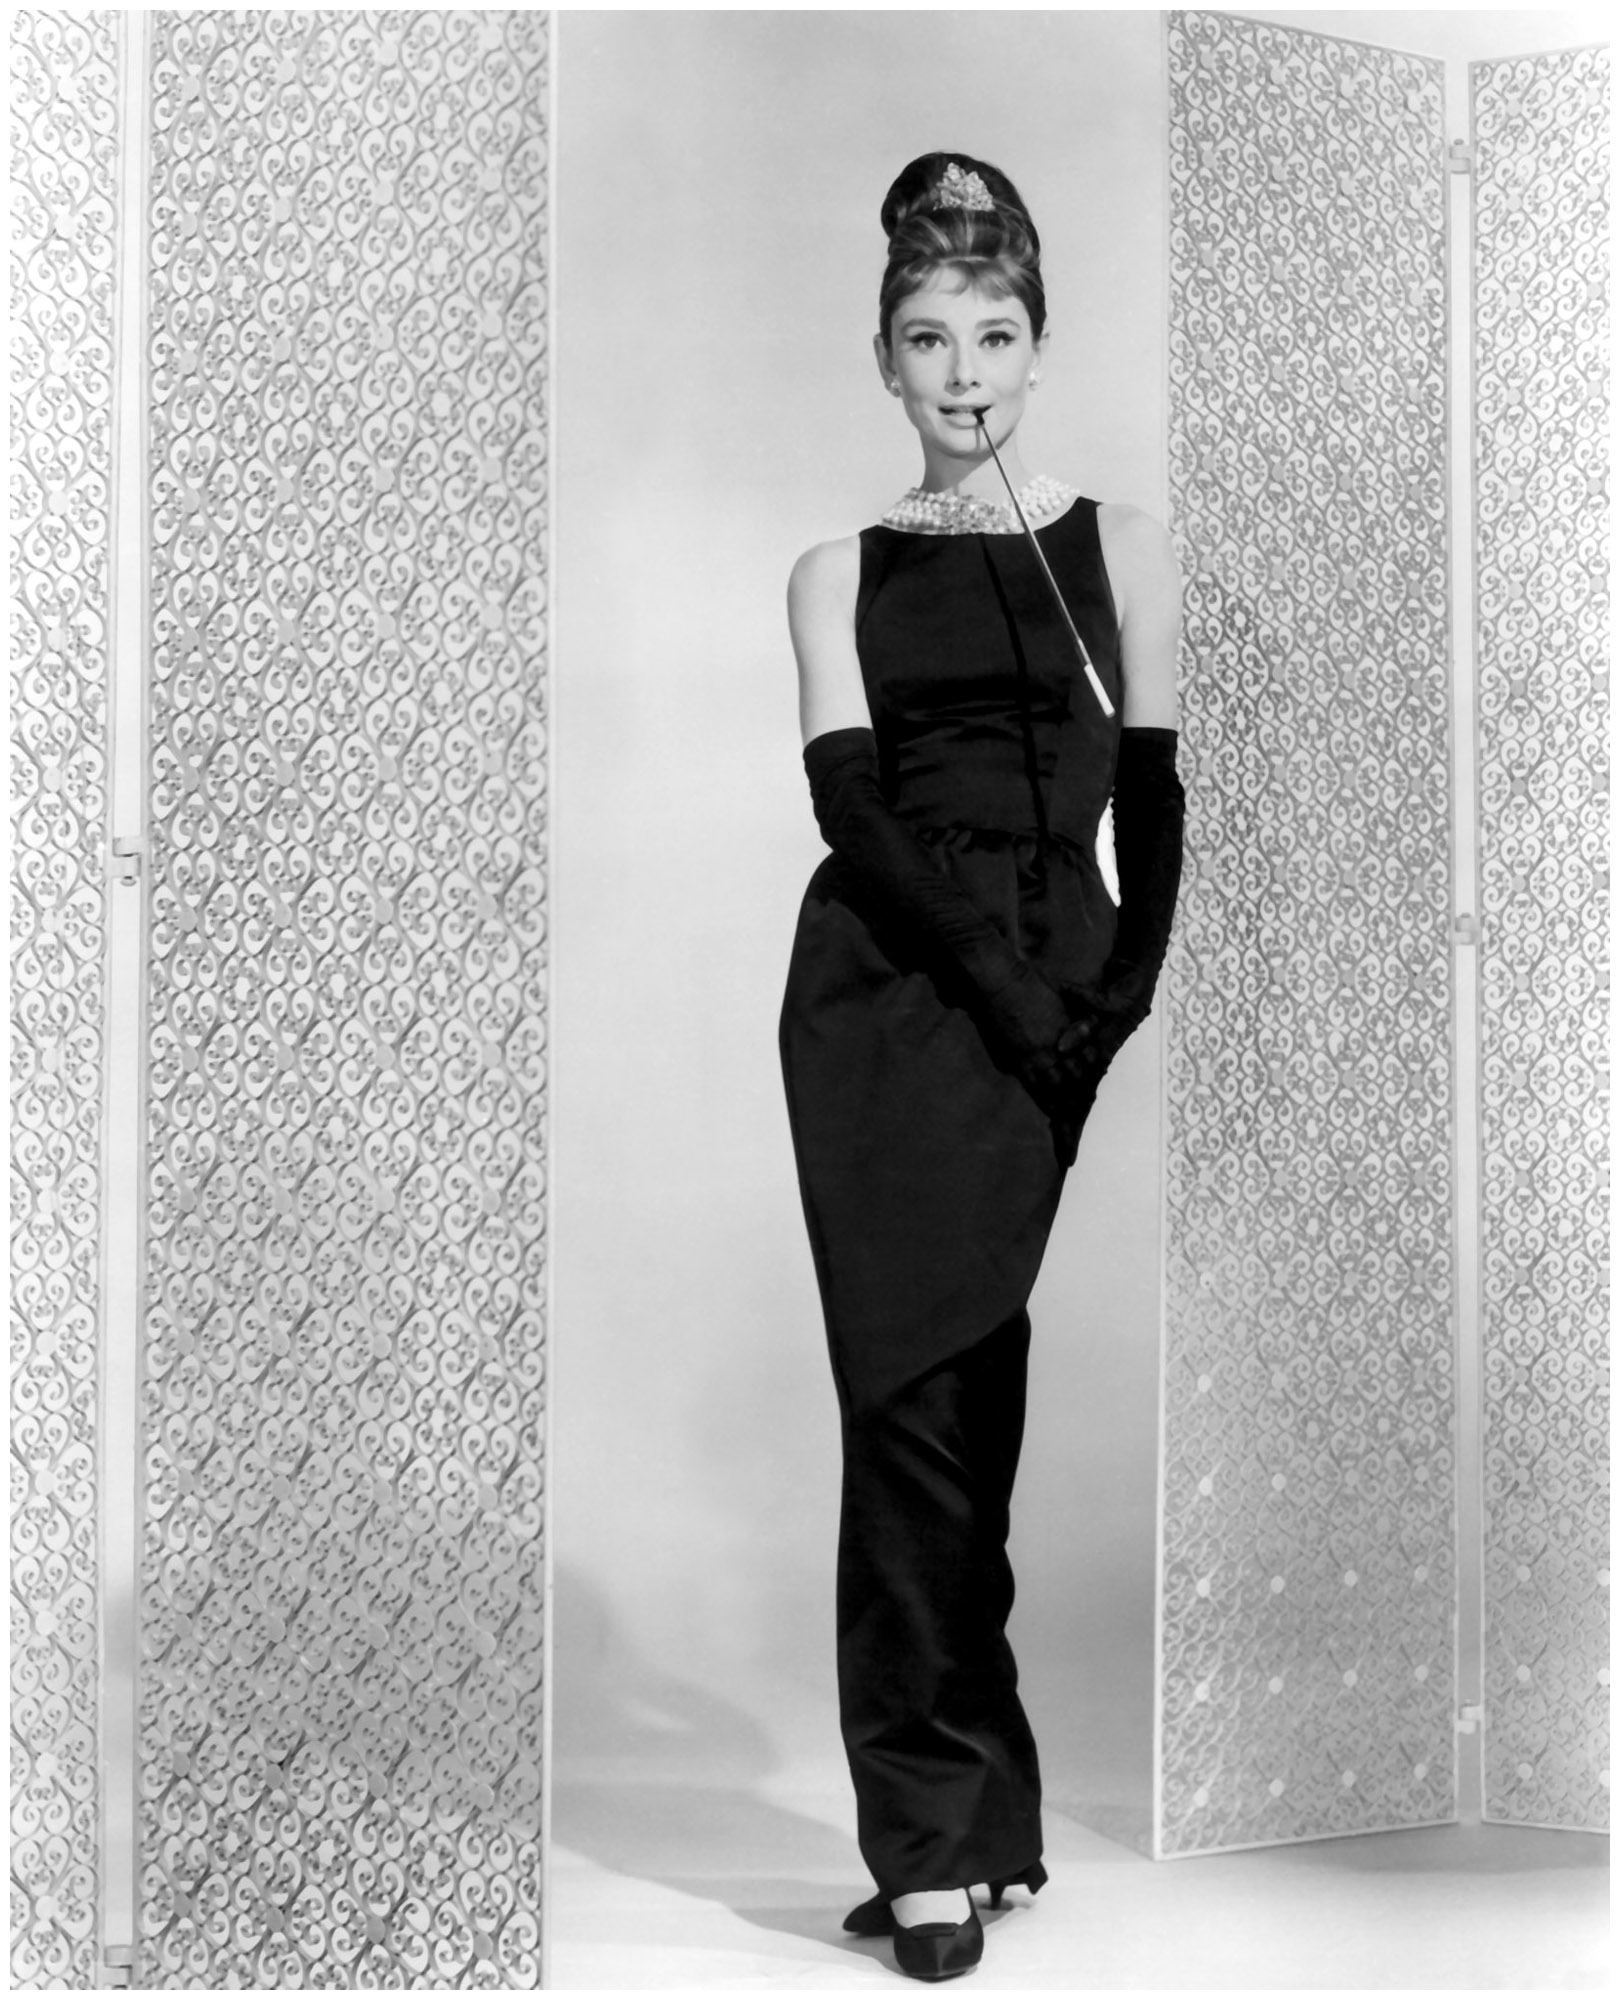 Audrey Hepburn | © Pleasurephoto Room | Pagina 2